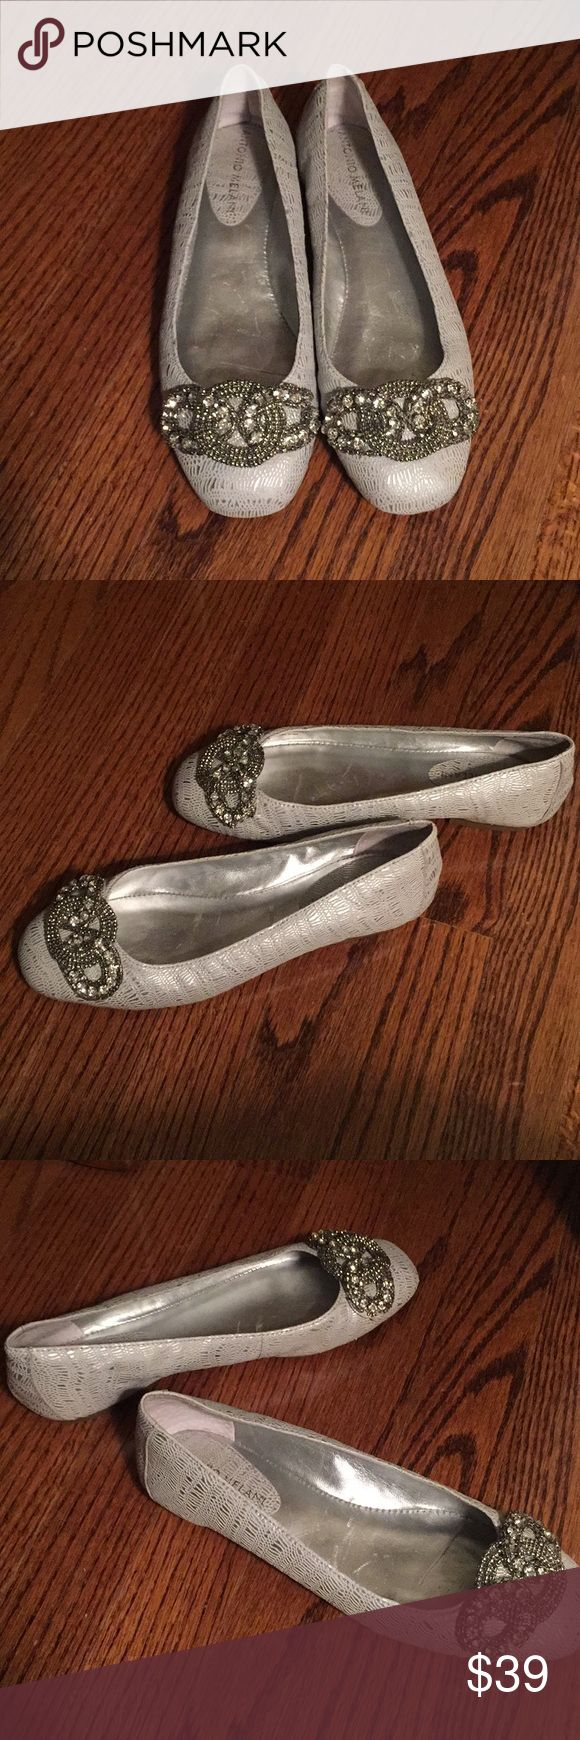 Antonio Melani Flats Antonio Melani Aviana flats. In great condition. Leather upper, man made lining, leather sock, man made sole. Embellished with rhinestones and beads. Made in Dominican Republic. Size 6.5 M. ANTONIO MELANI Shoes Flats & Loafers